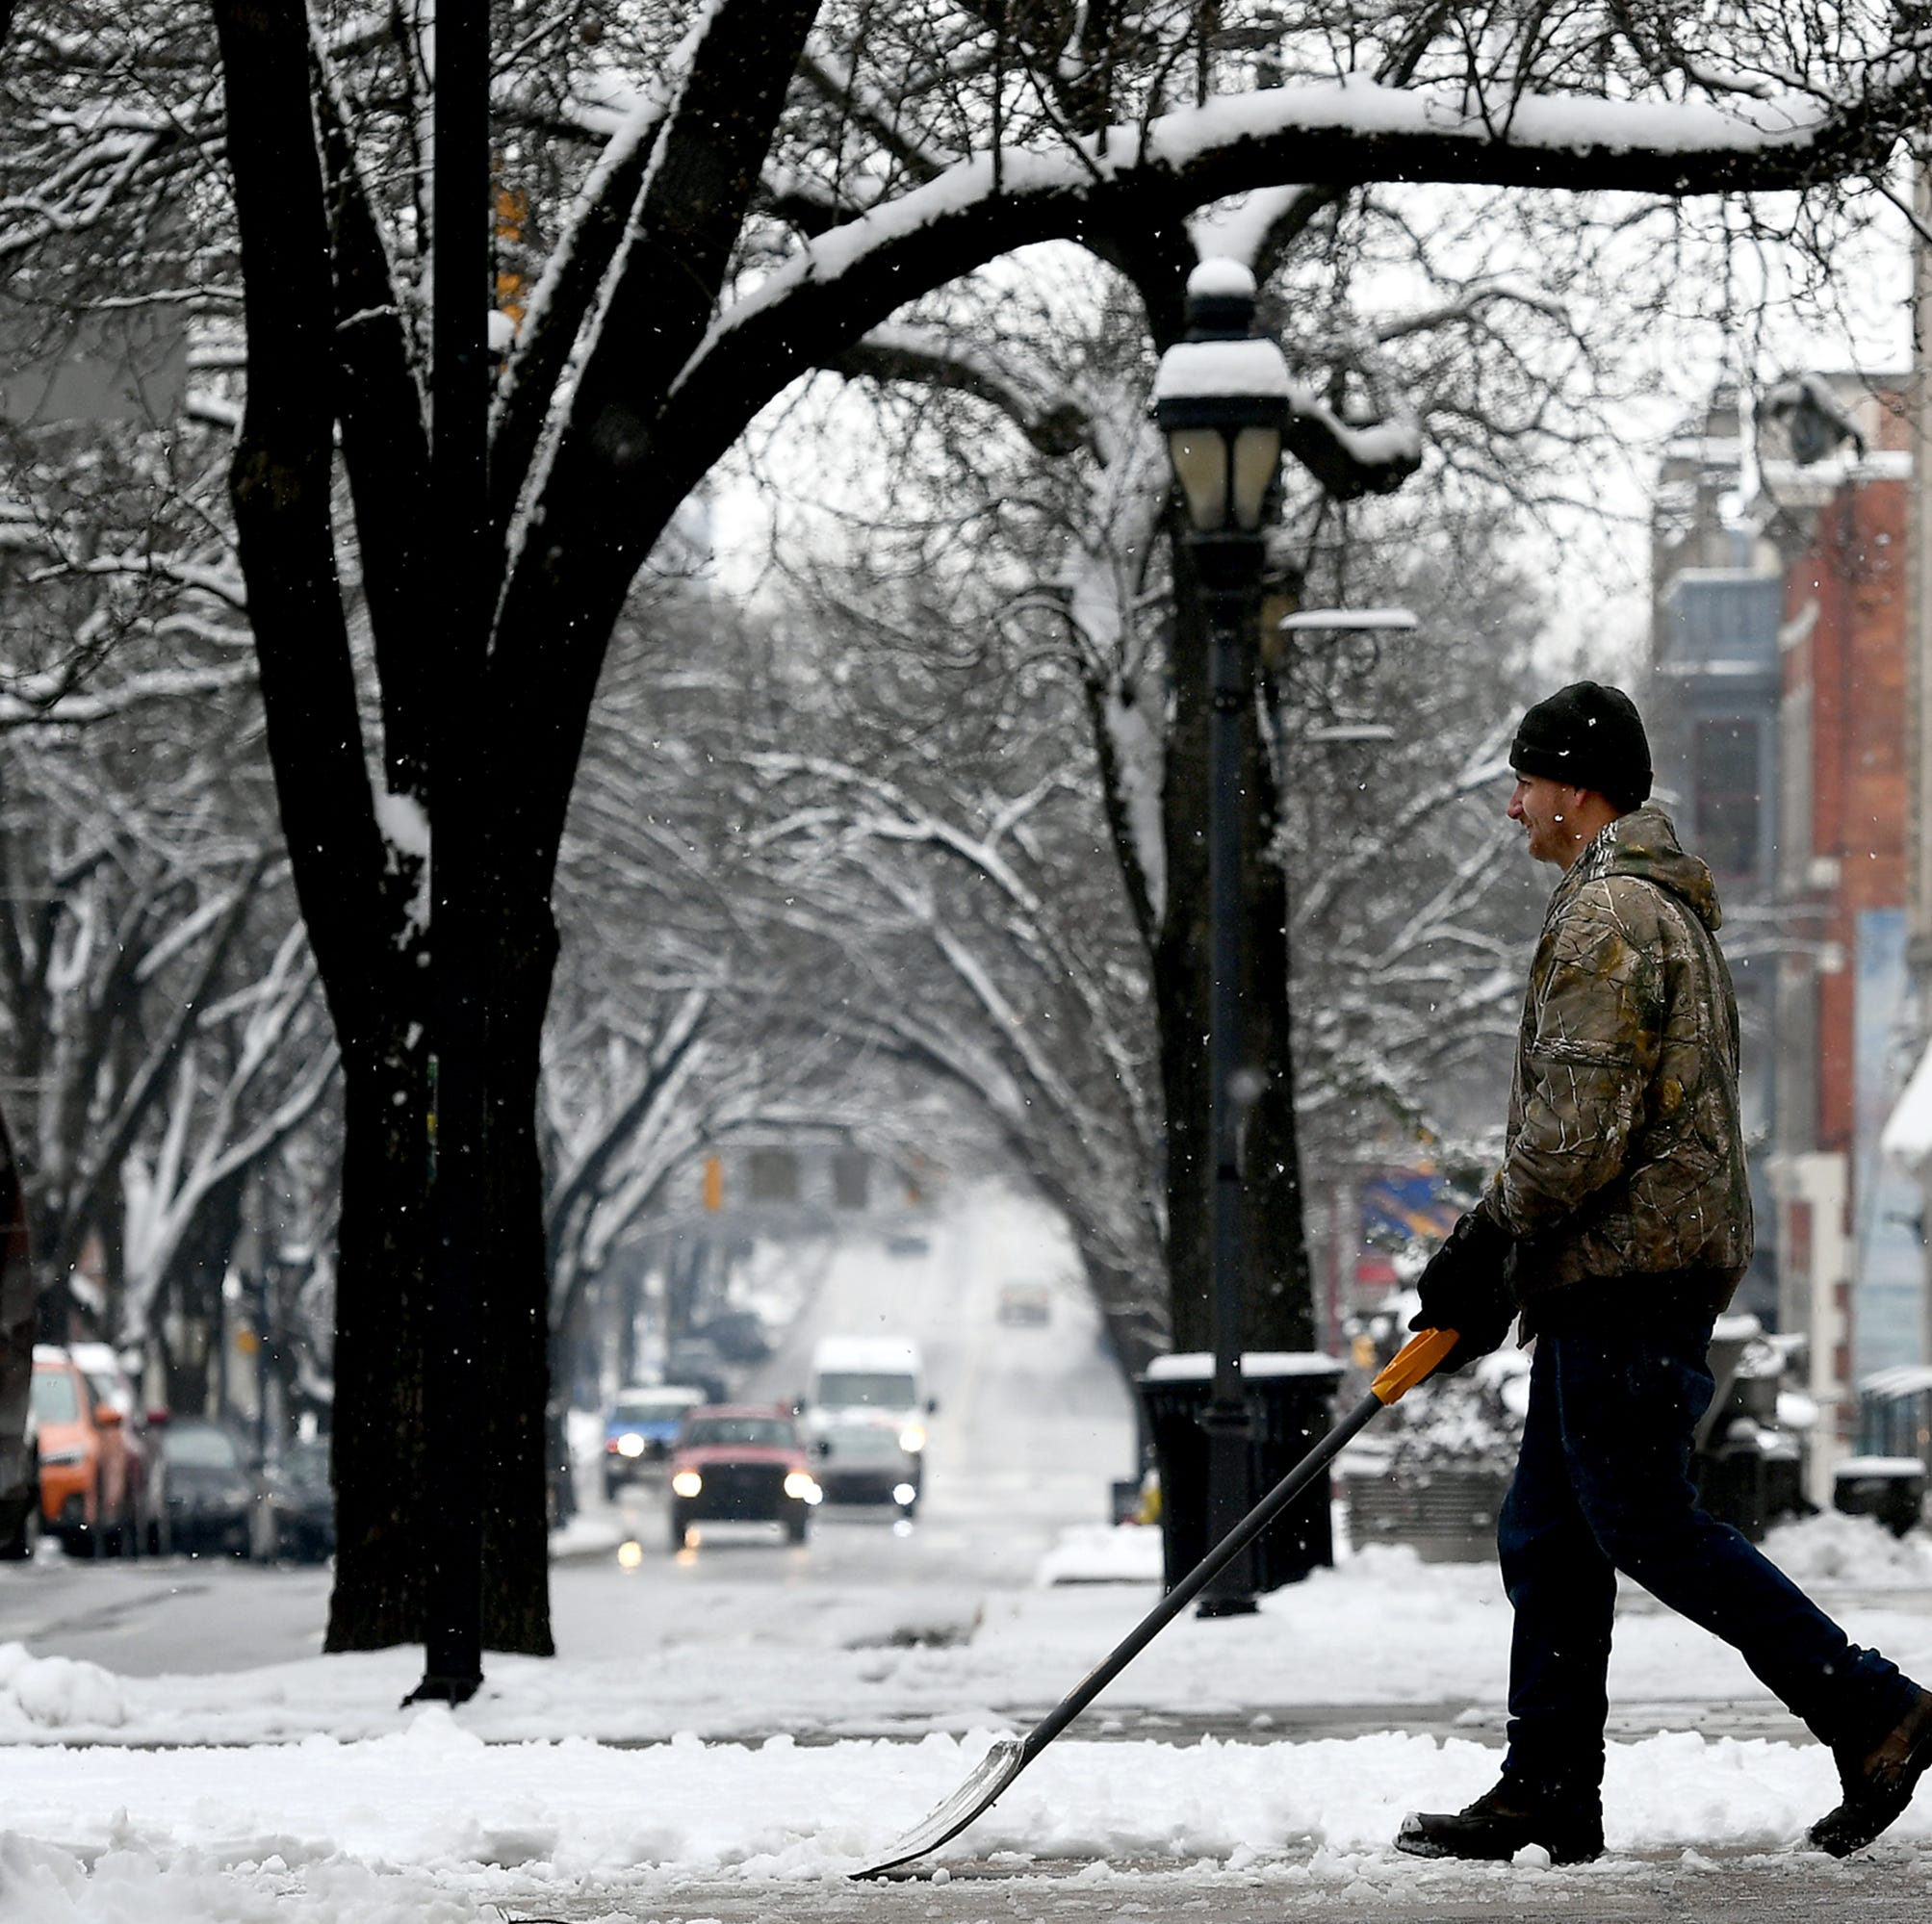 Winter storm: All York County school districts, city offices closed Wednesday